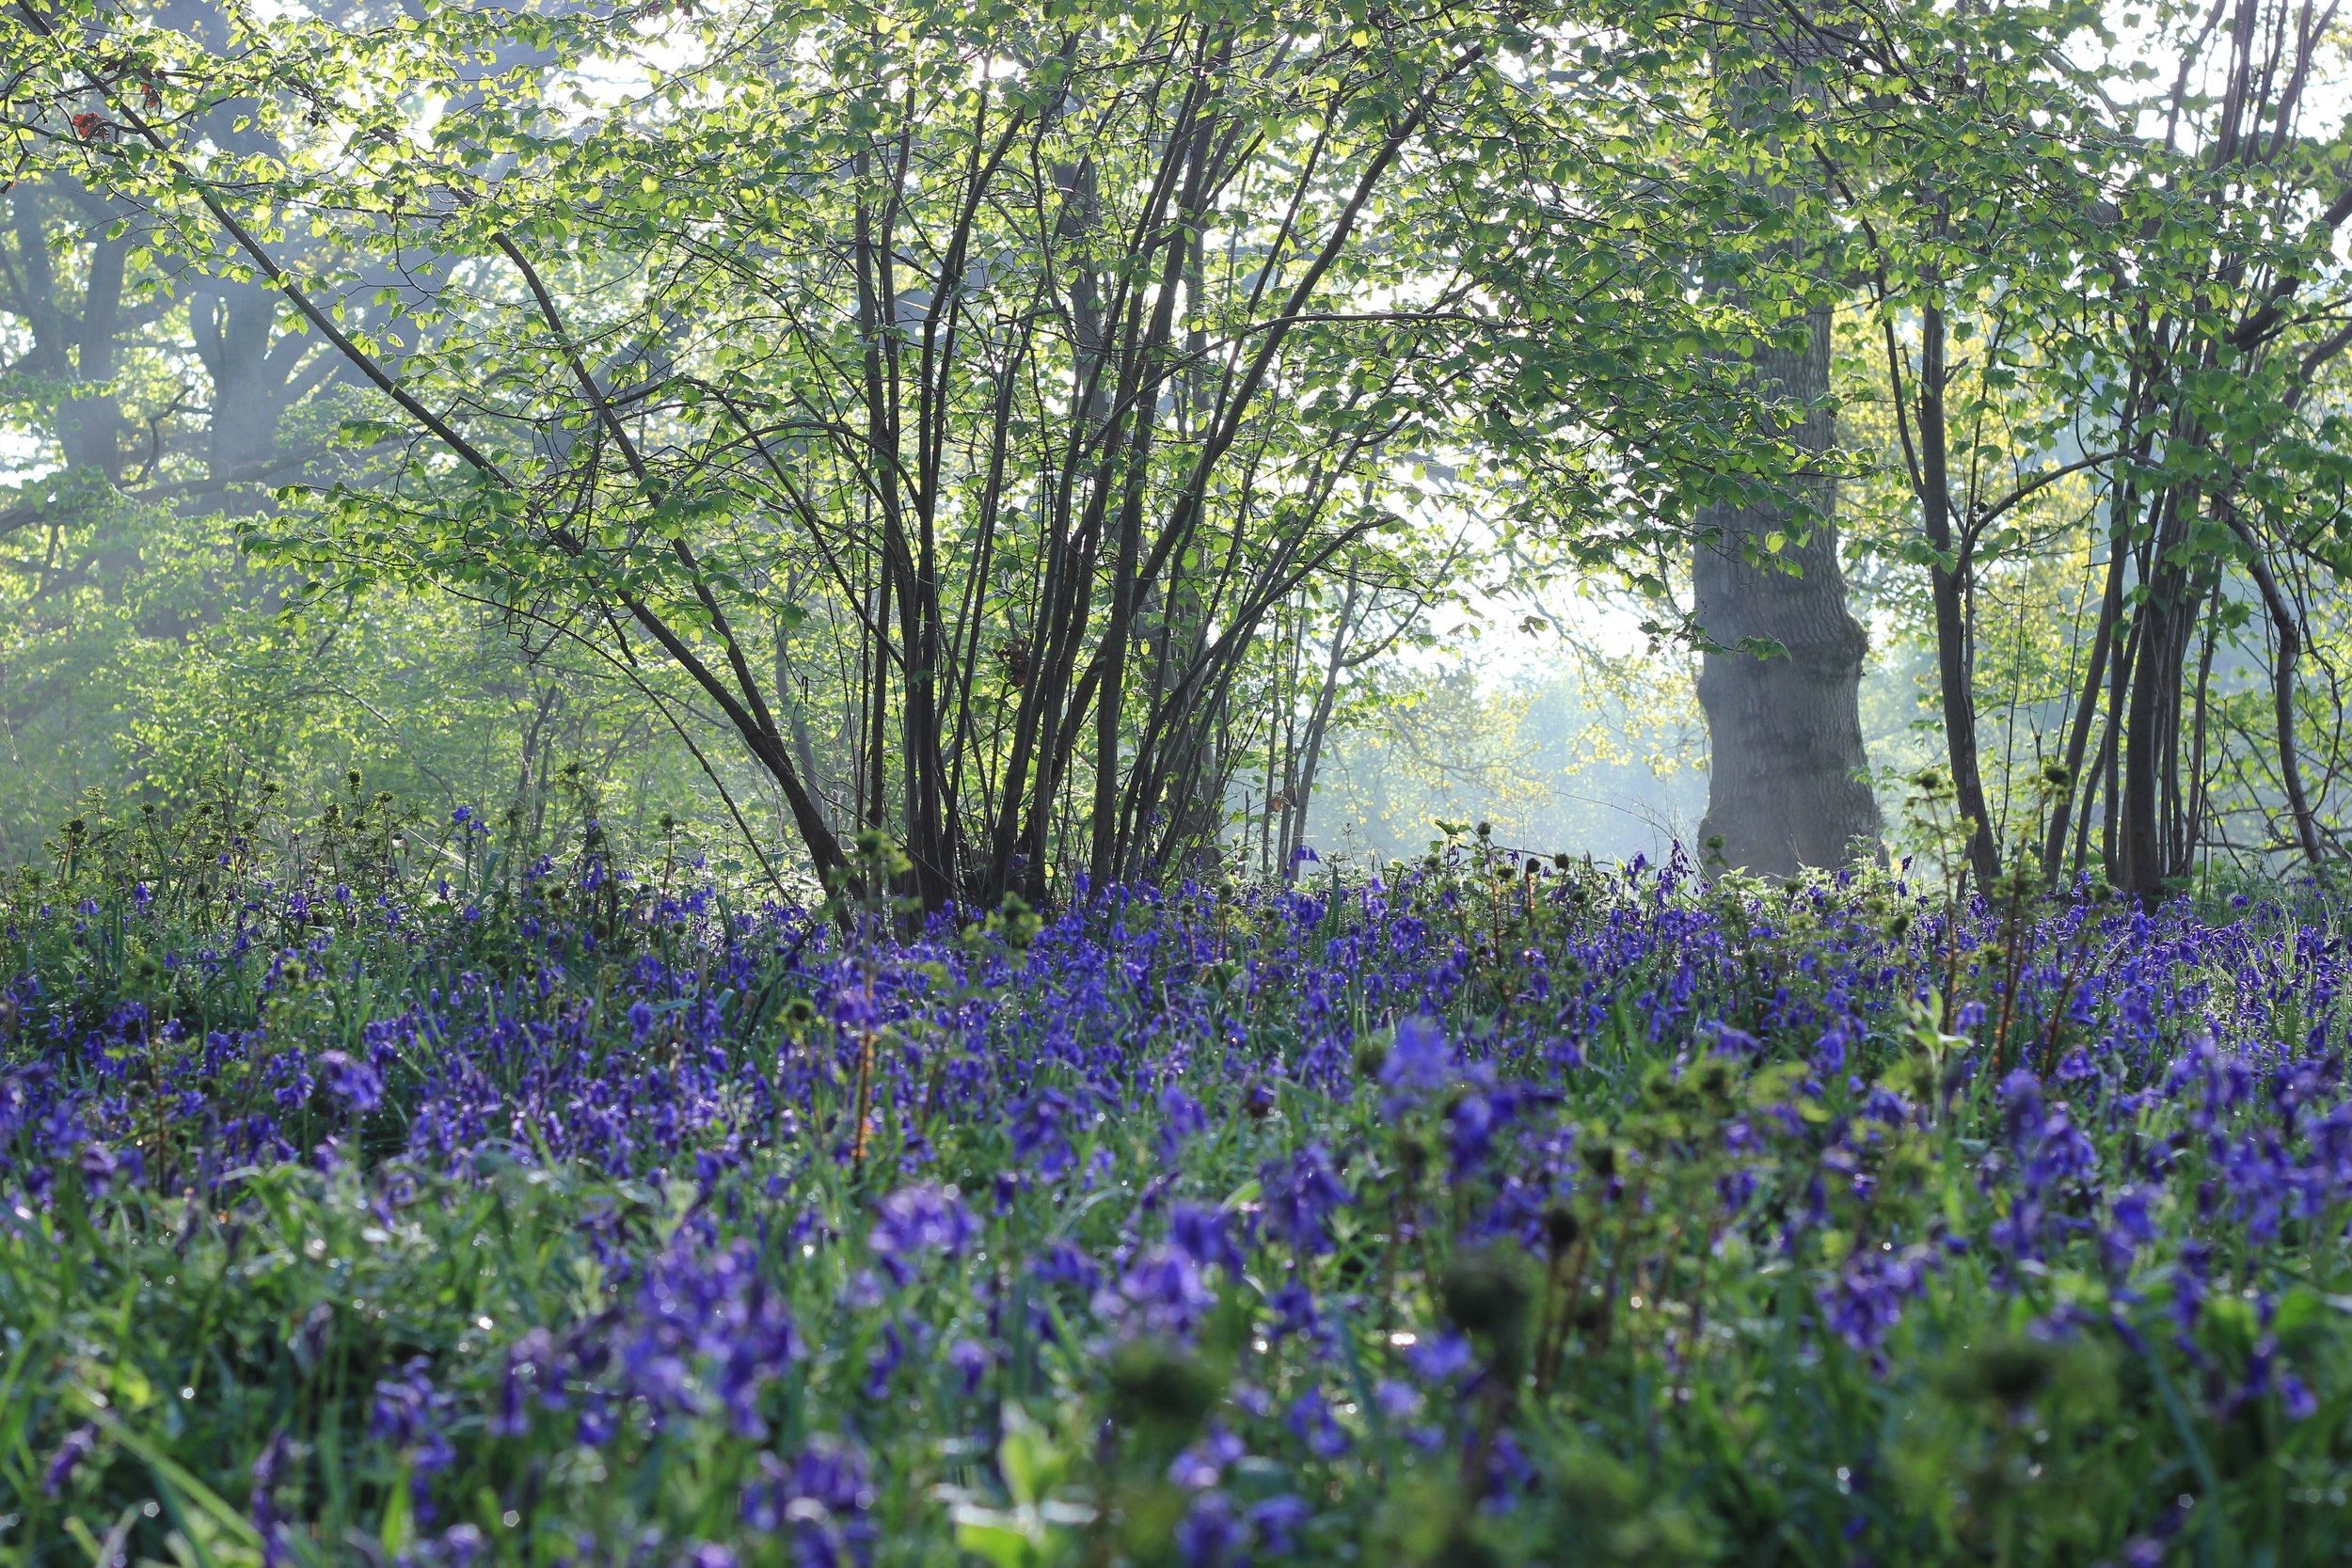 Bluebells have emerged in parts of the woodland after coppicing has allowed the sun to reach them